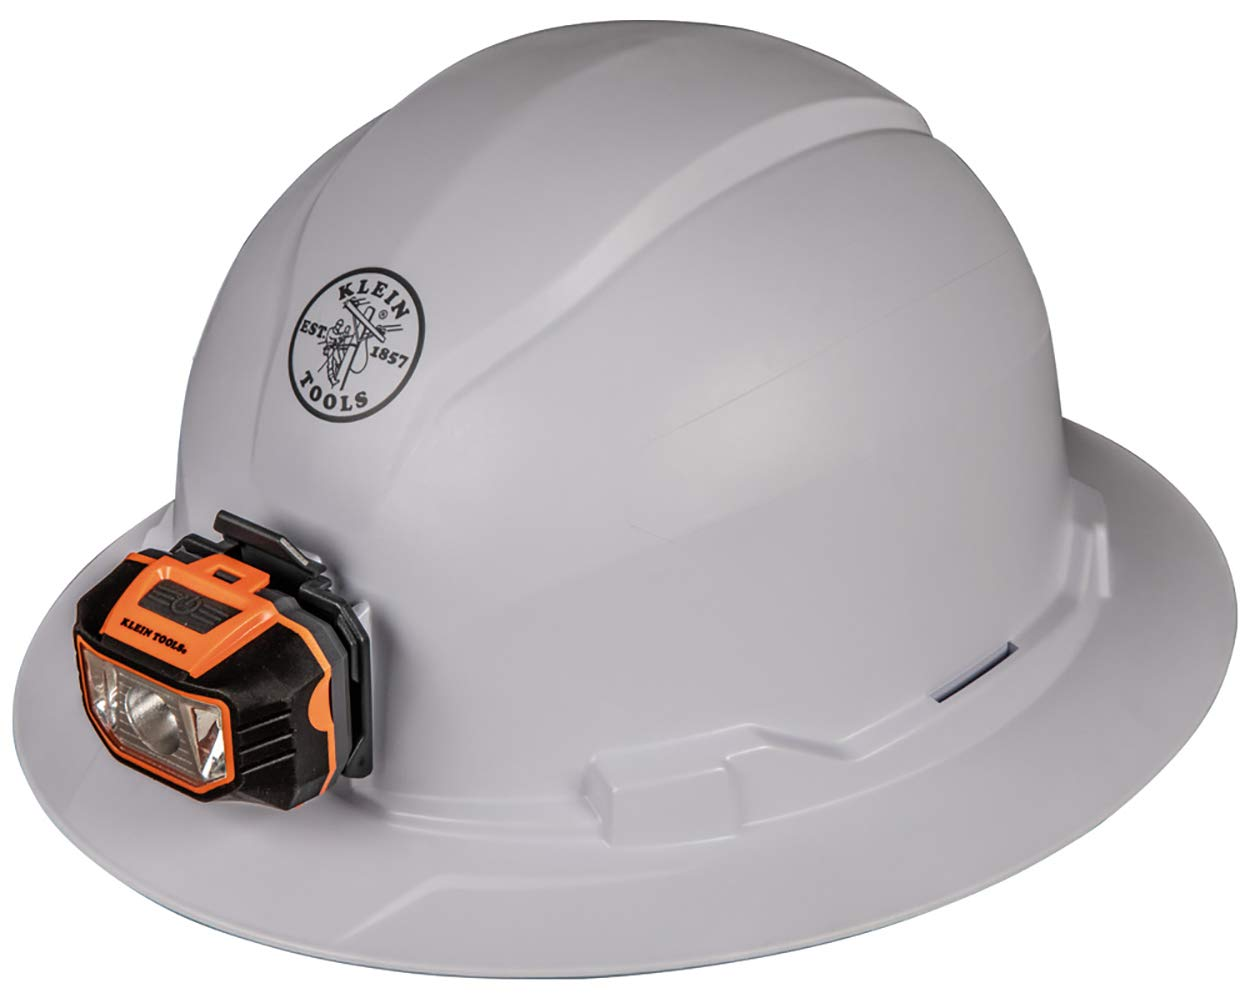 Klein Tools 60406 Hard Hat, Non-Vented Full Brim Style with Light, Padded, Self-Wicking Odor-Resistant Sweatband, Tested up to 20kV, White by Klein Tools